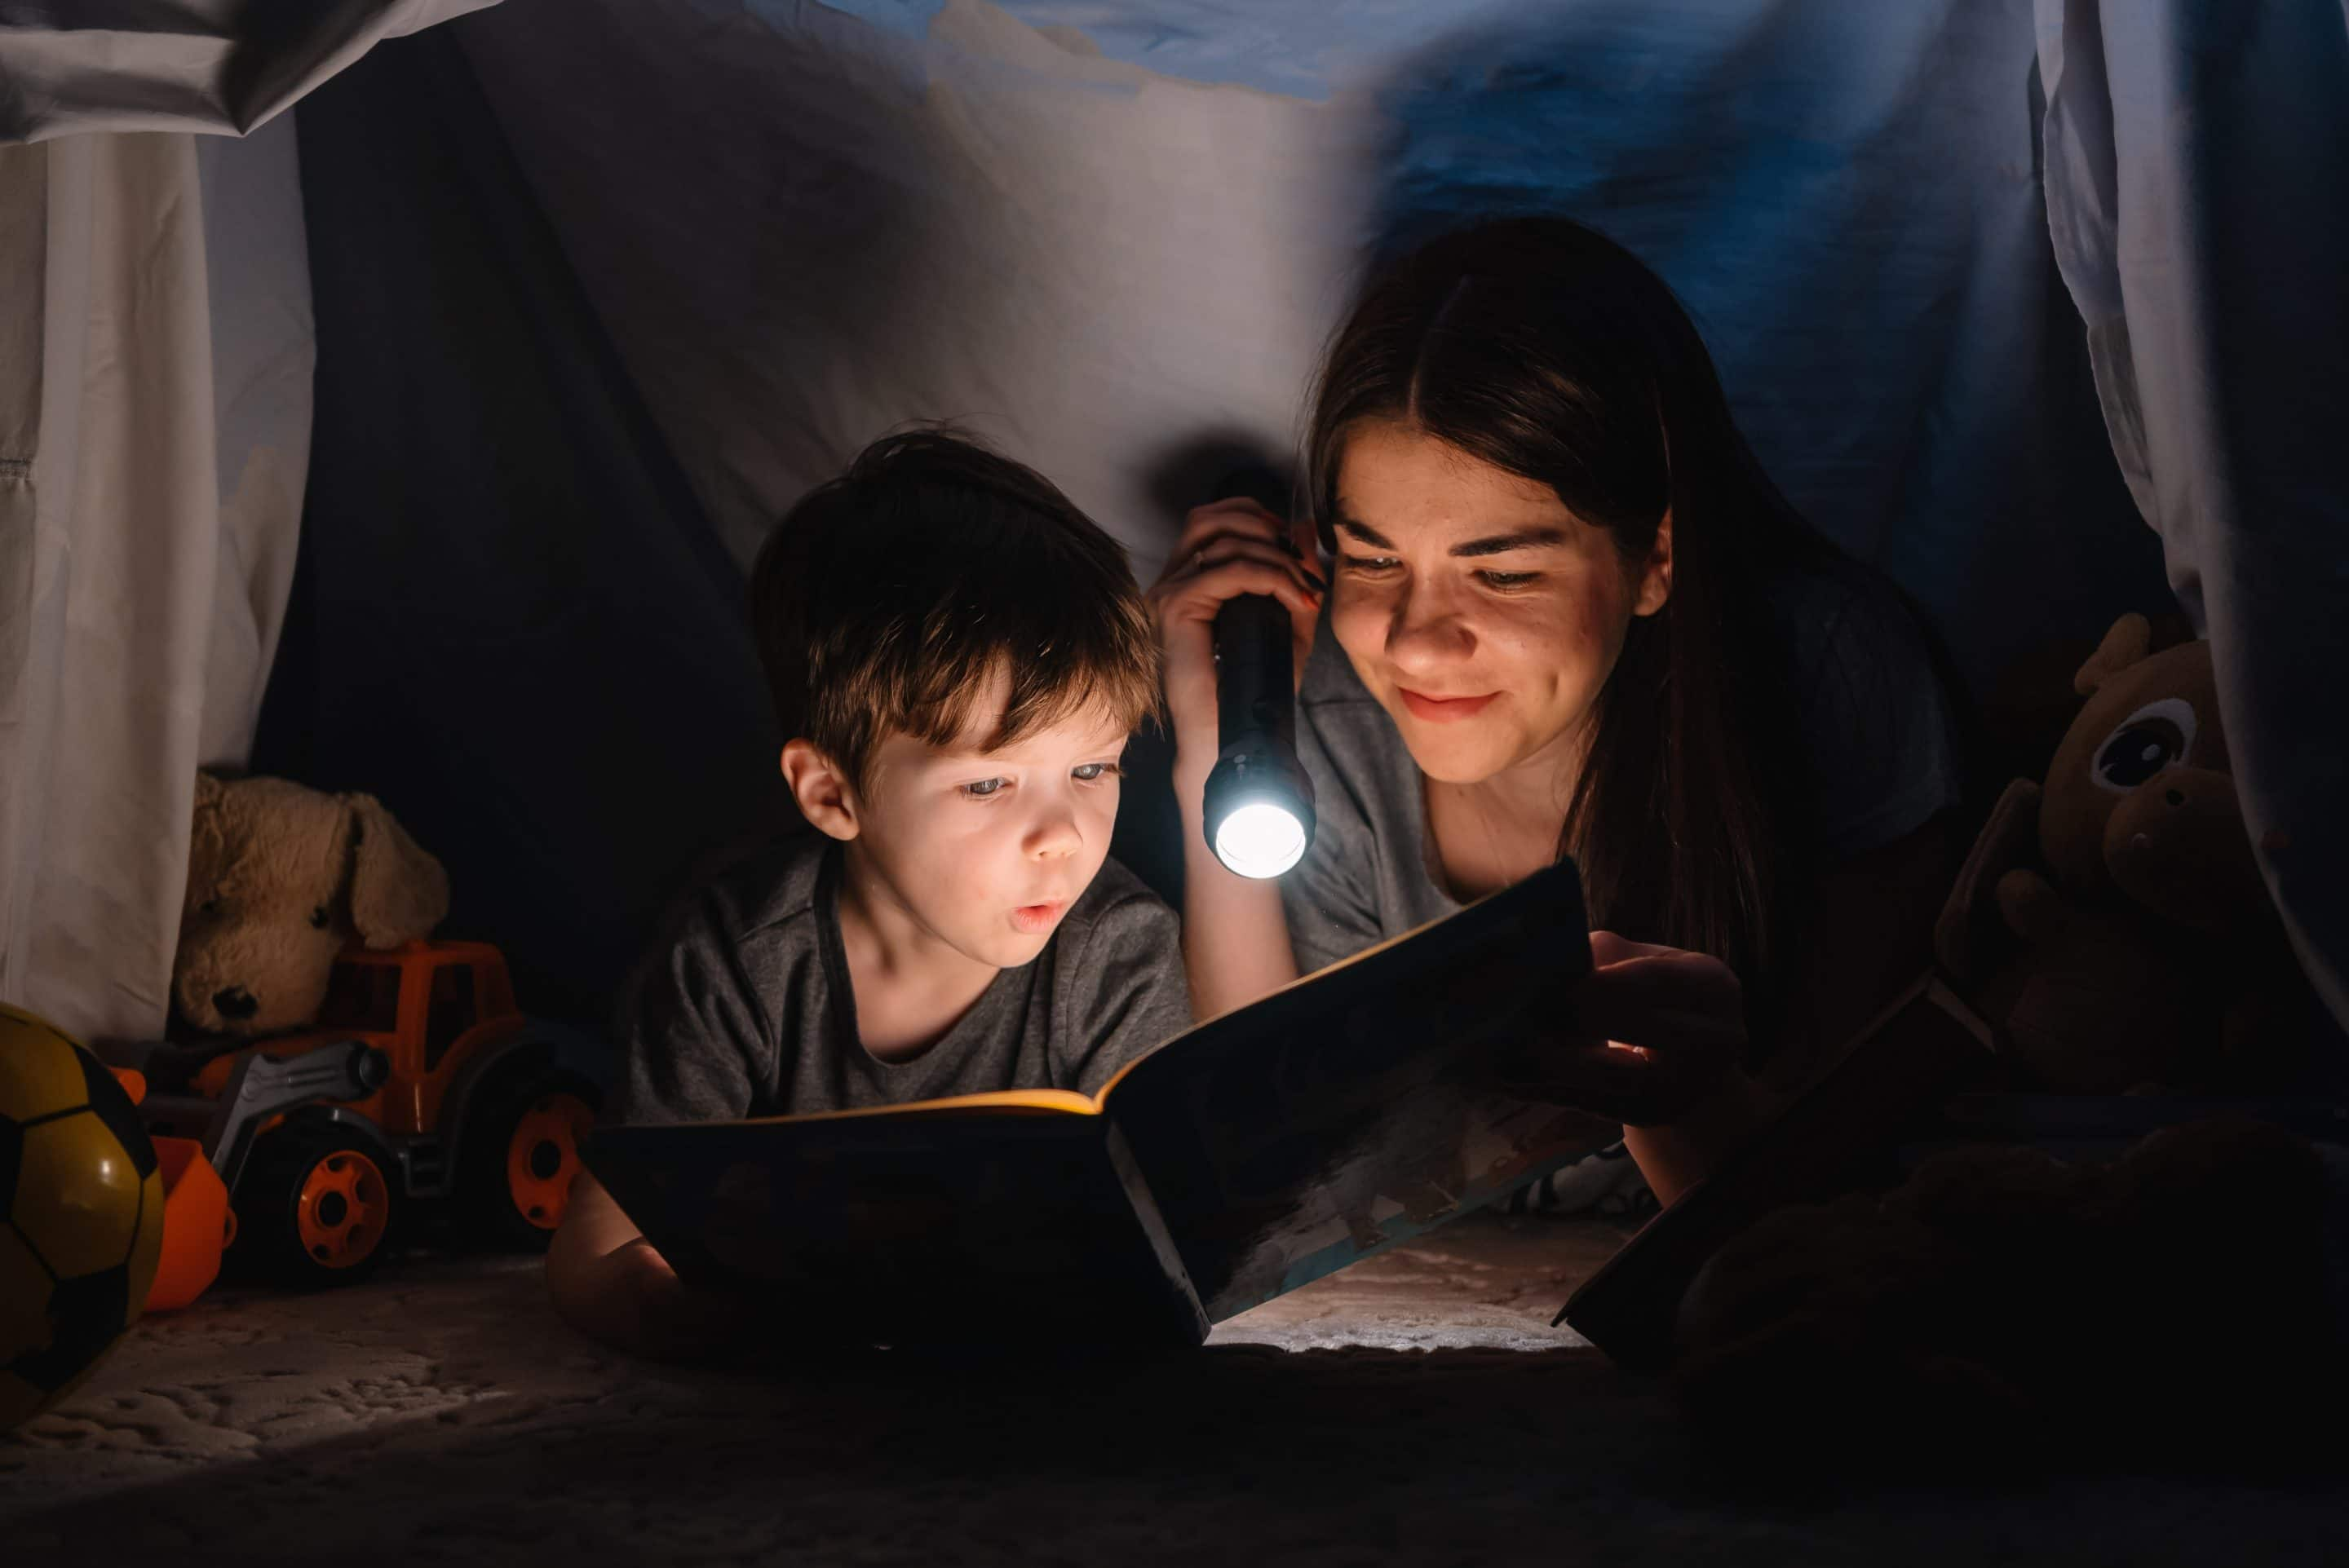 Let's Play! <br></noscript>A List of Children's Books to Spark Creativity